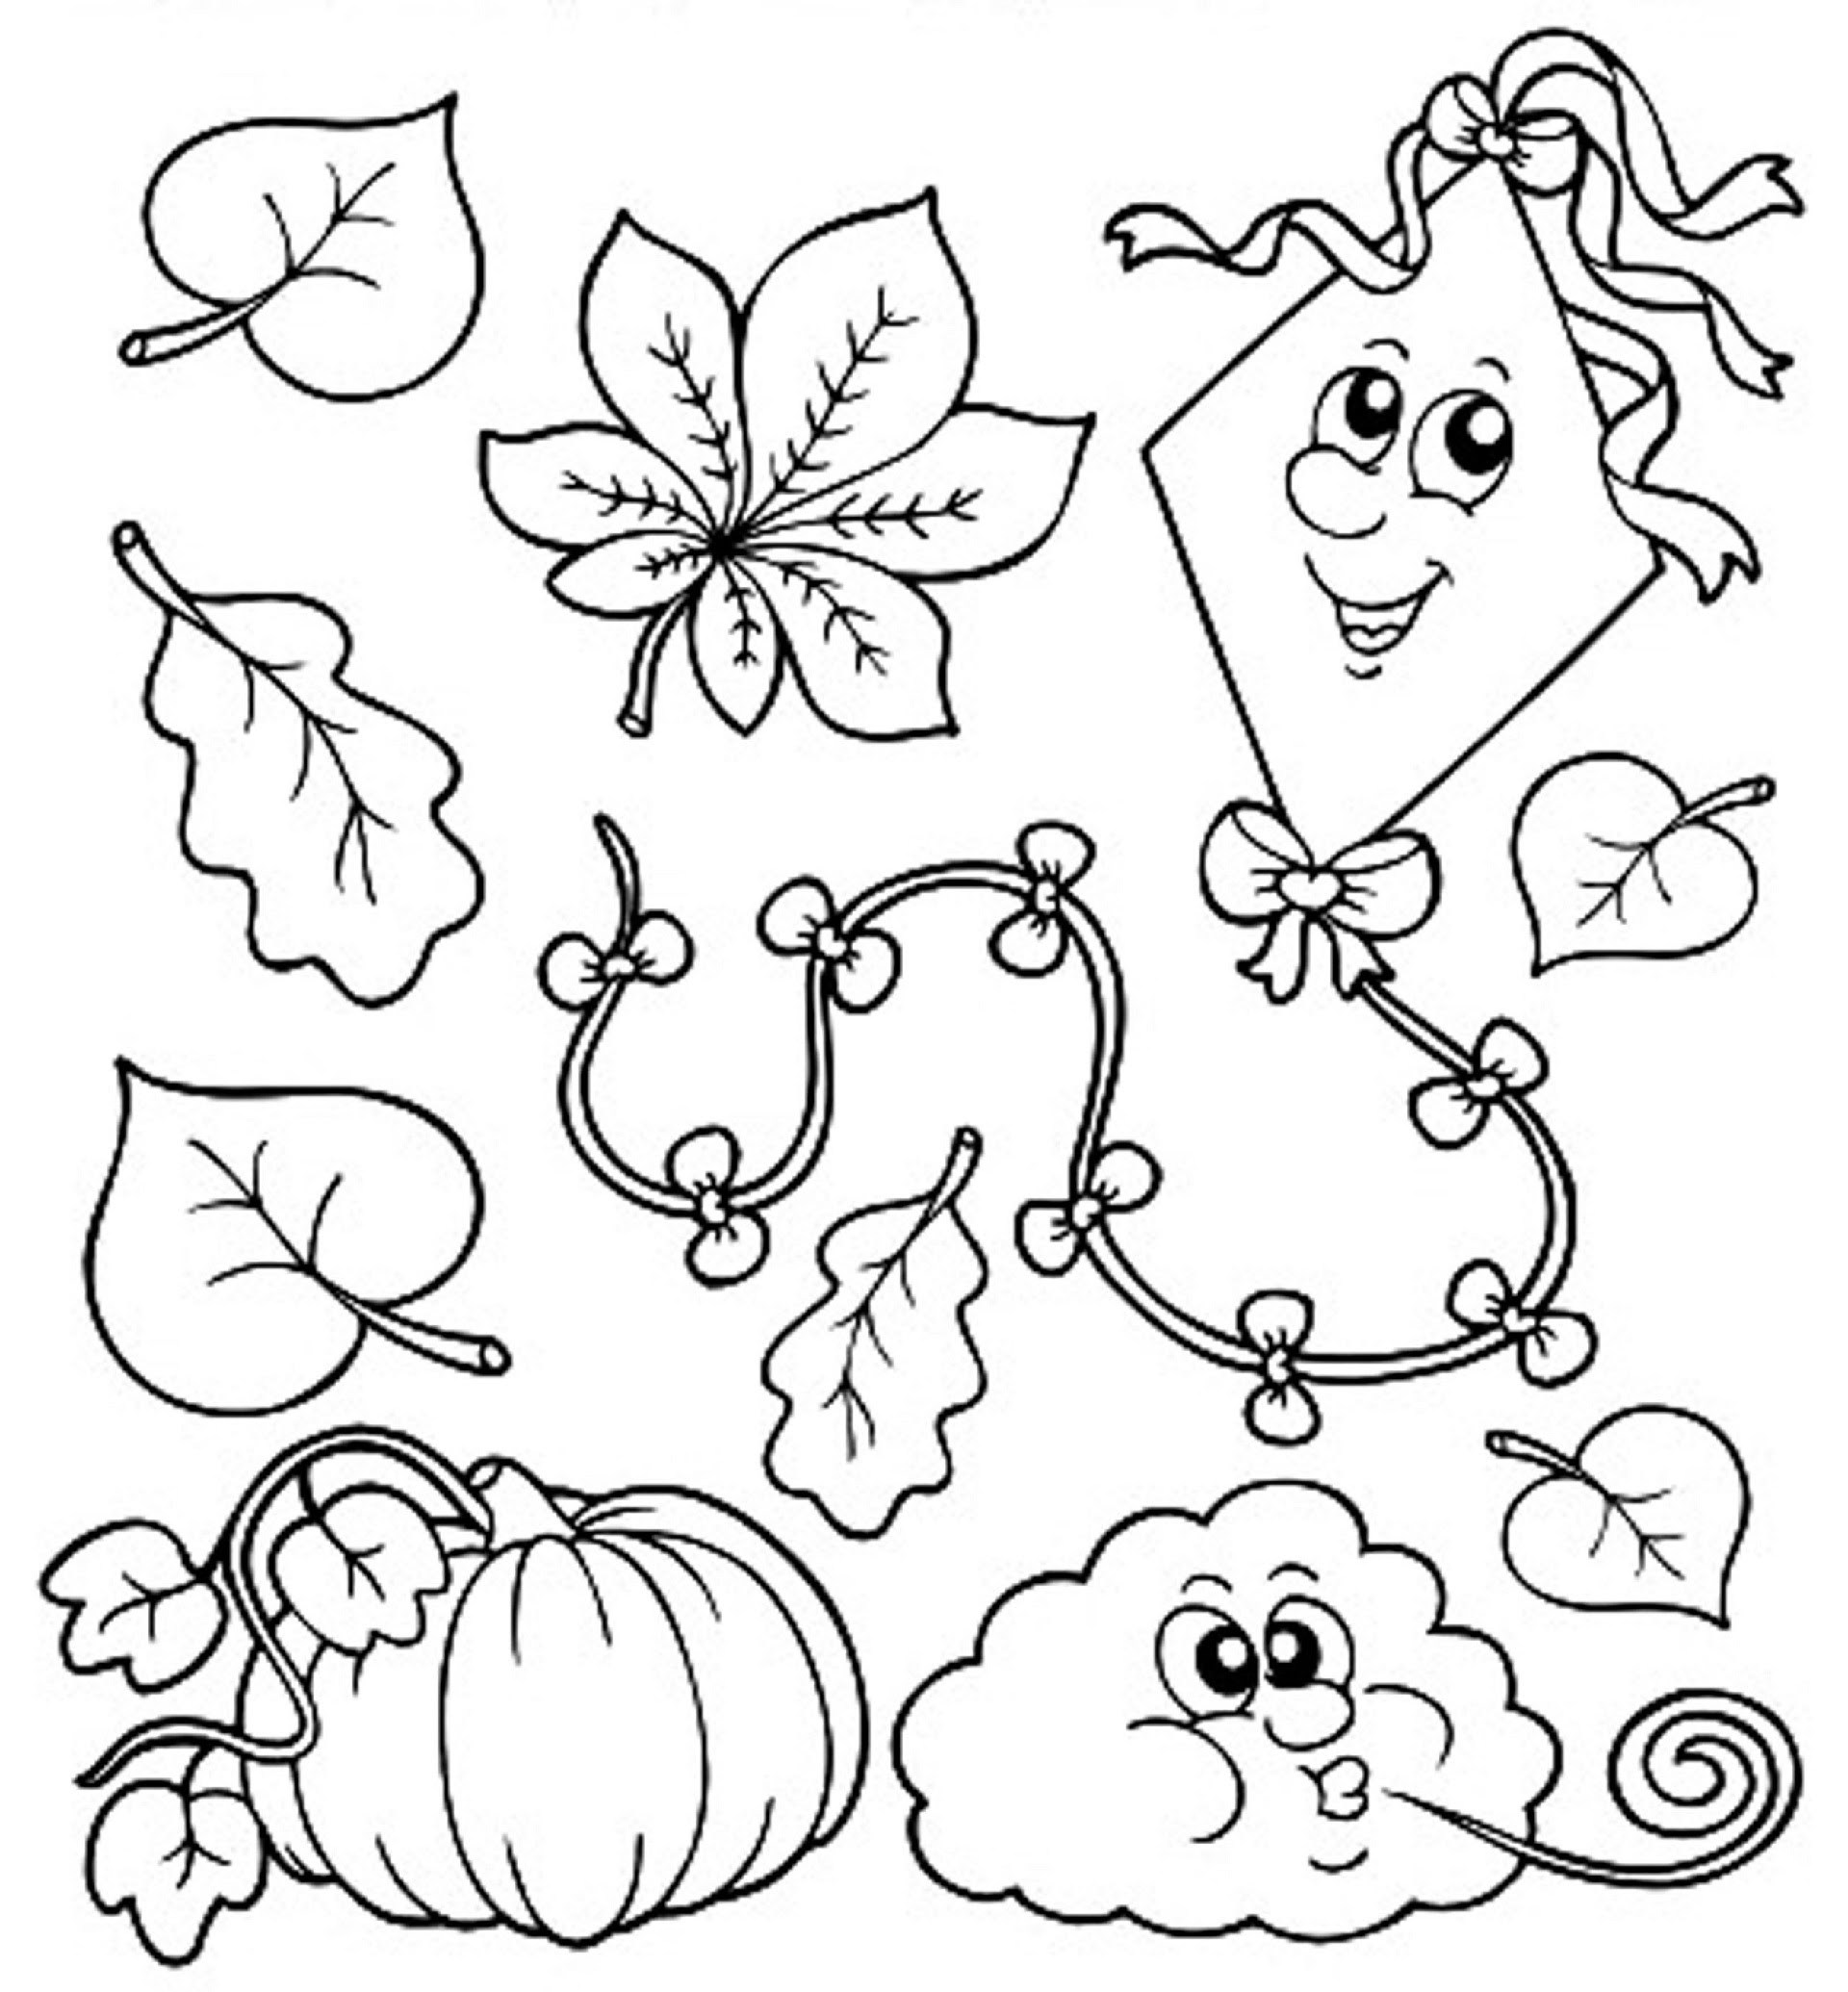 78 EASY FALL LEAVES COLORING PAGES FOR KINDERGARTEN